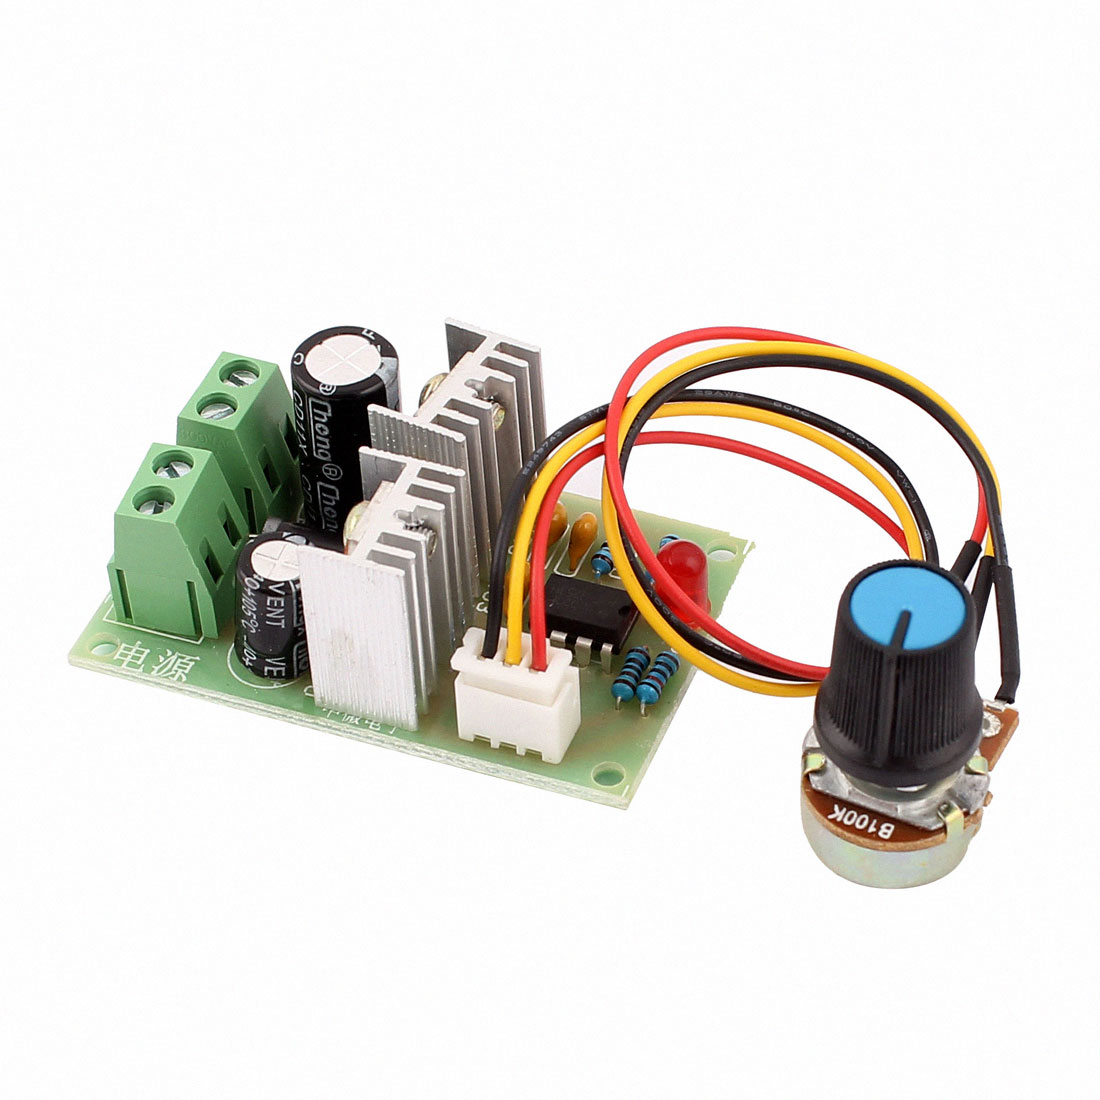 12V-36V 3A Pulse Width Modulator PWM DC Motor Speed Controller Control Switch